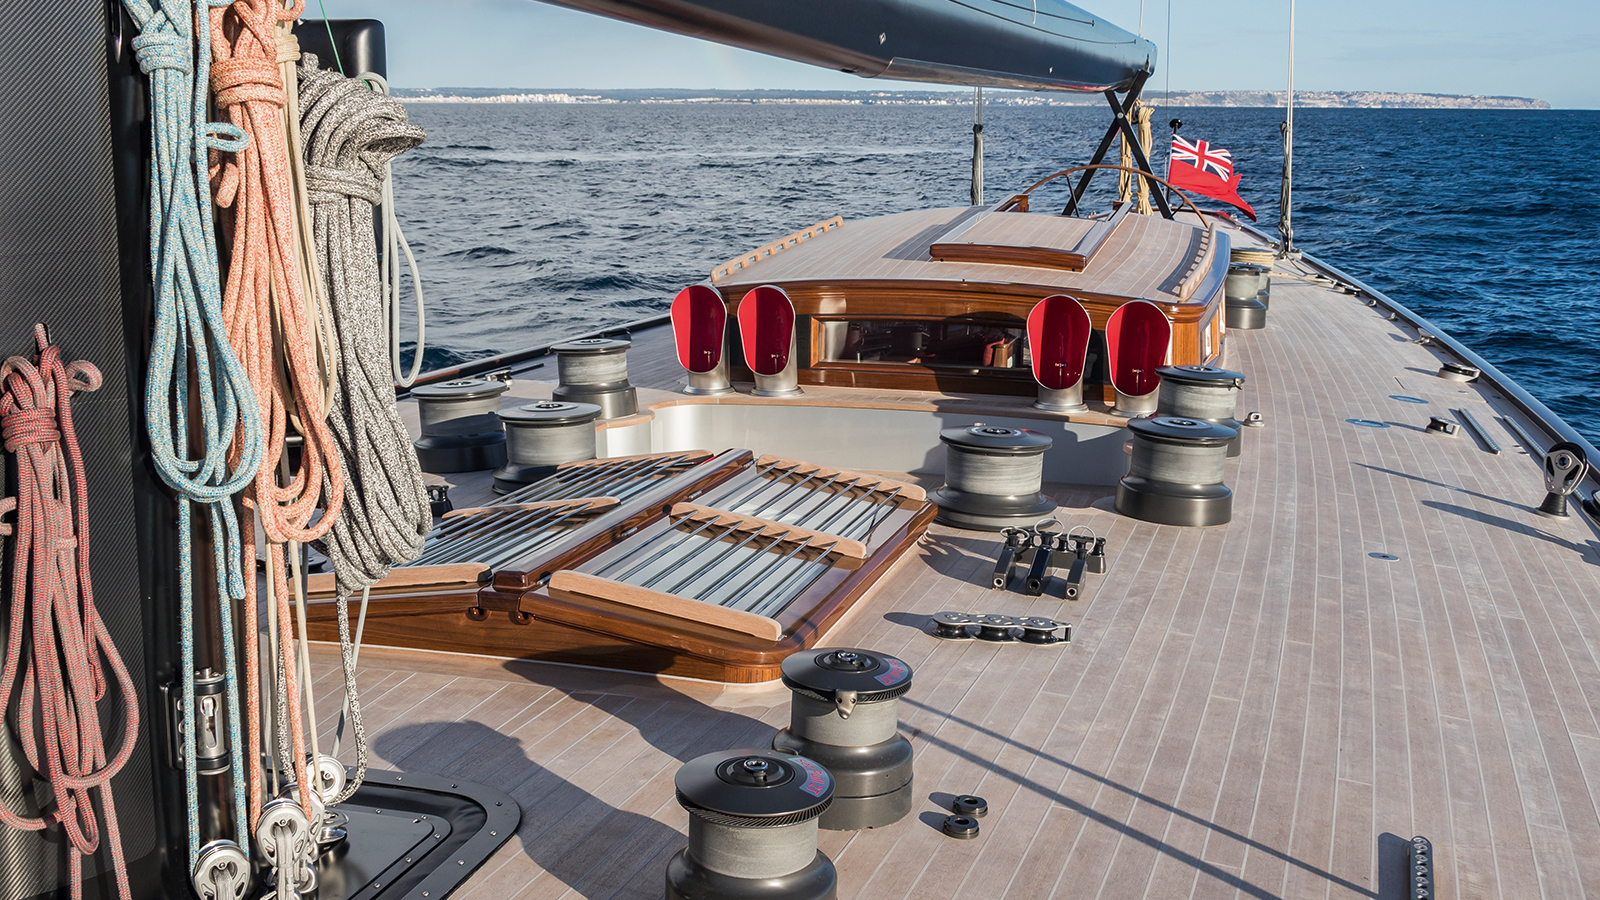 the-deckhouse-of-the-j-class-sailing-yacht-svea-credit-carlo-borlenghi